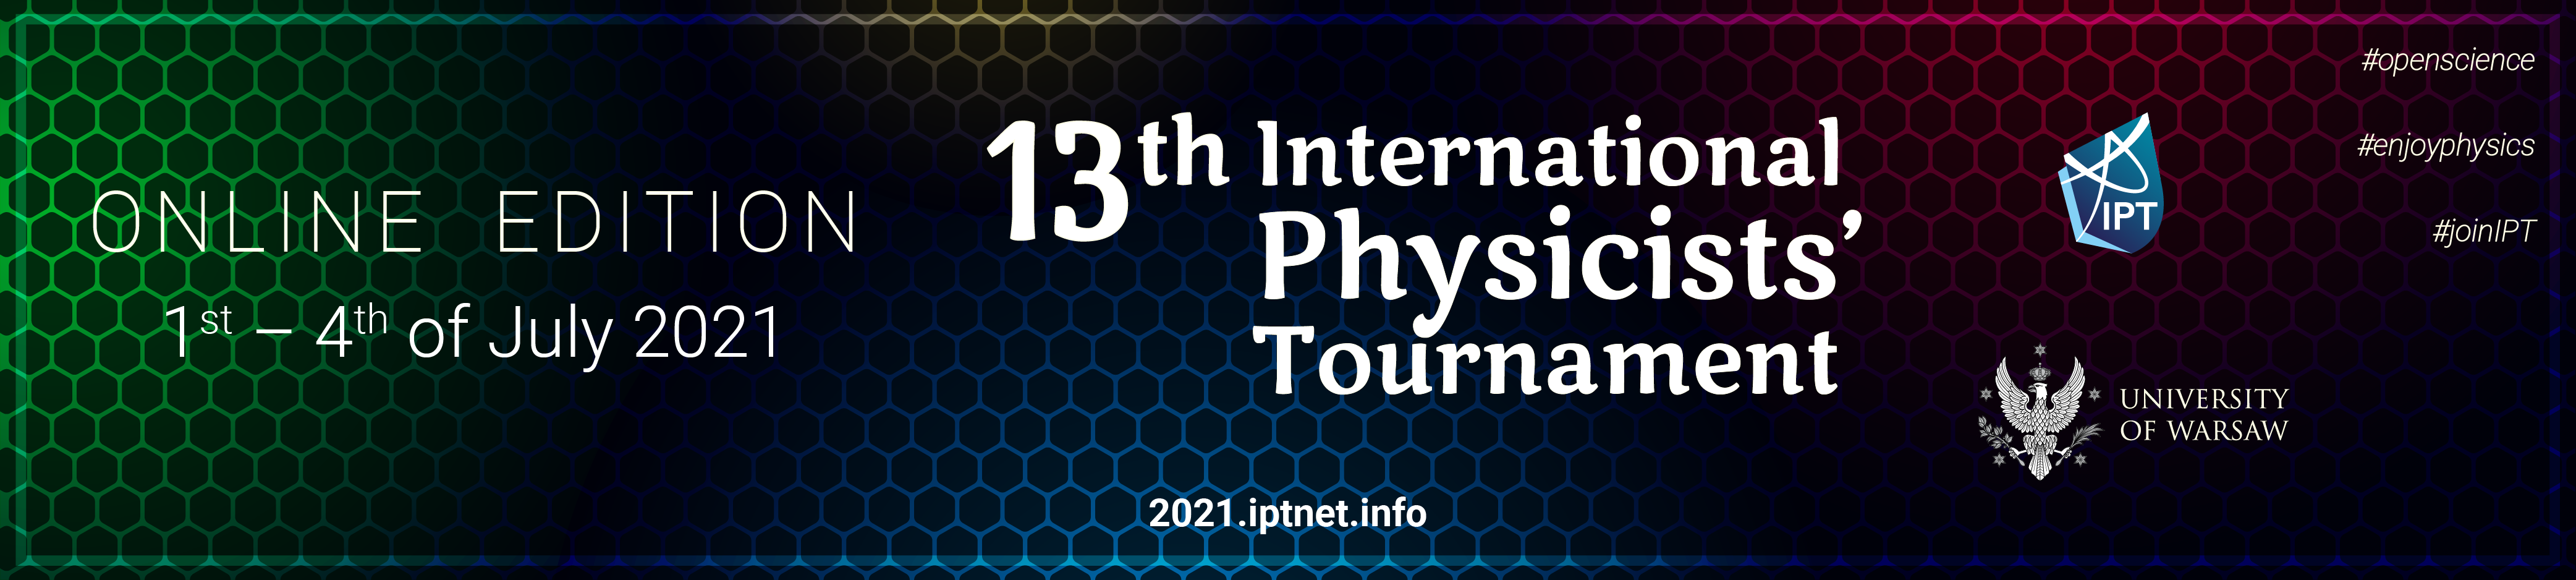 International Physicists' Tournament 2021